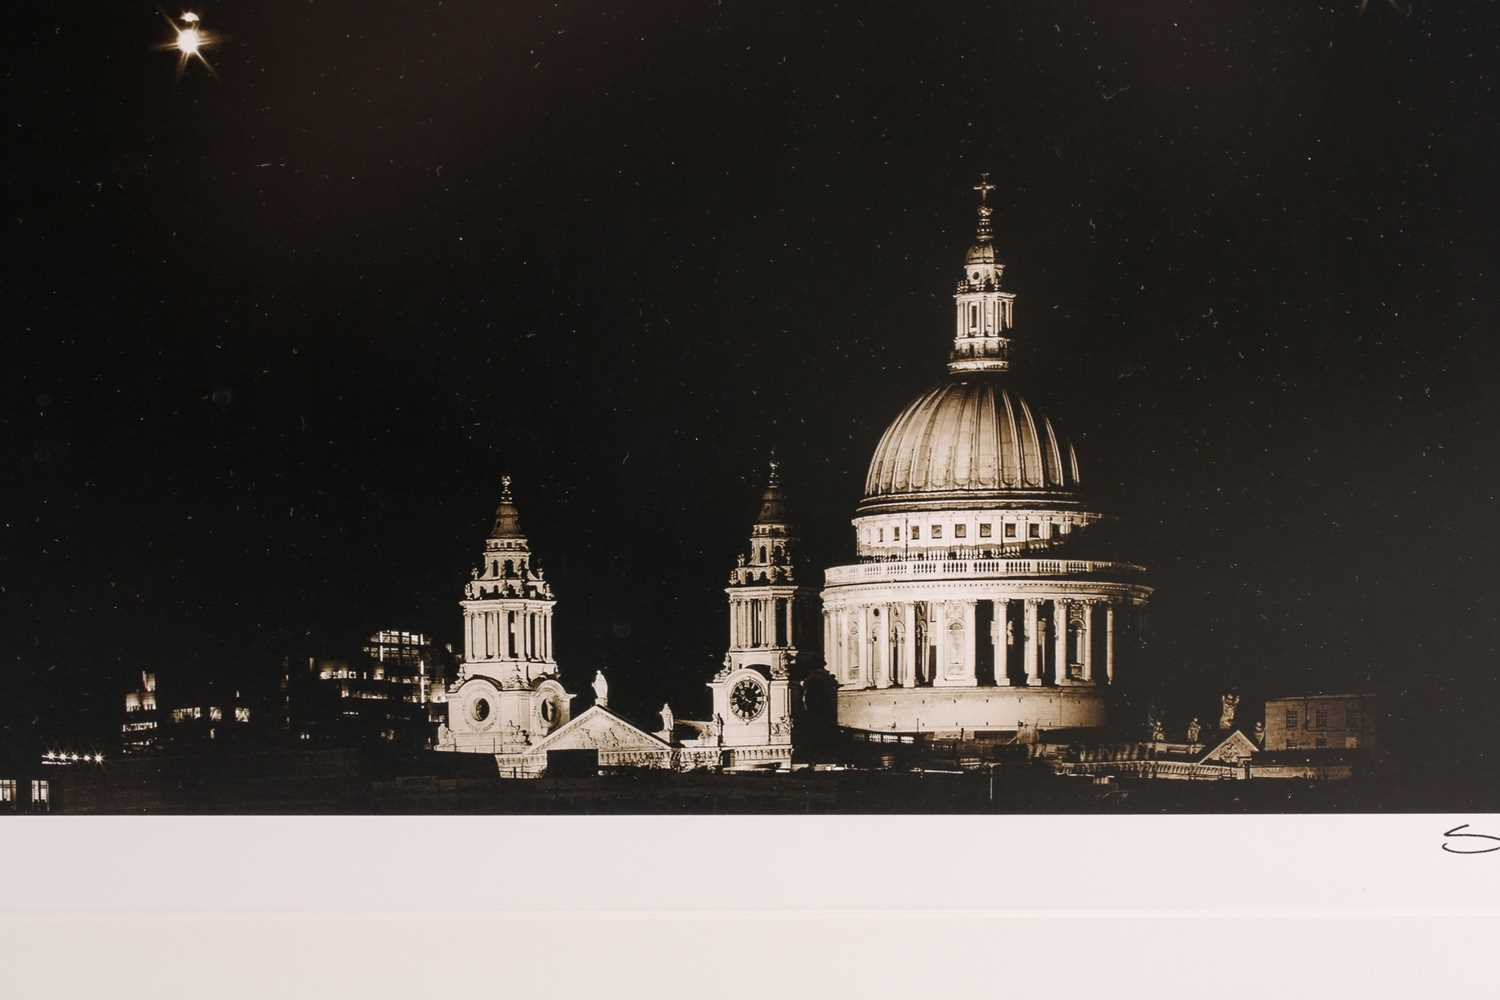 Stuart Redler, St Pauls 1, archival pigment print, signed lower right, print number 15 out of an - Image 4 of 5